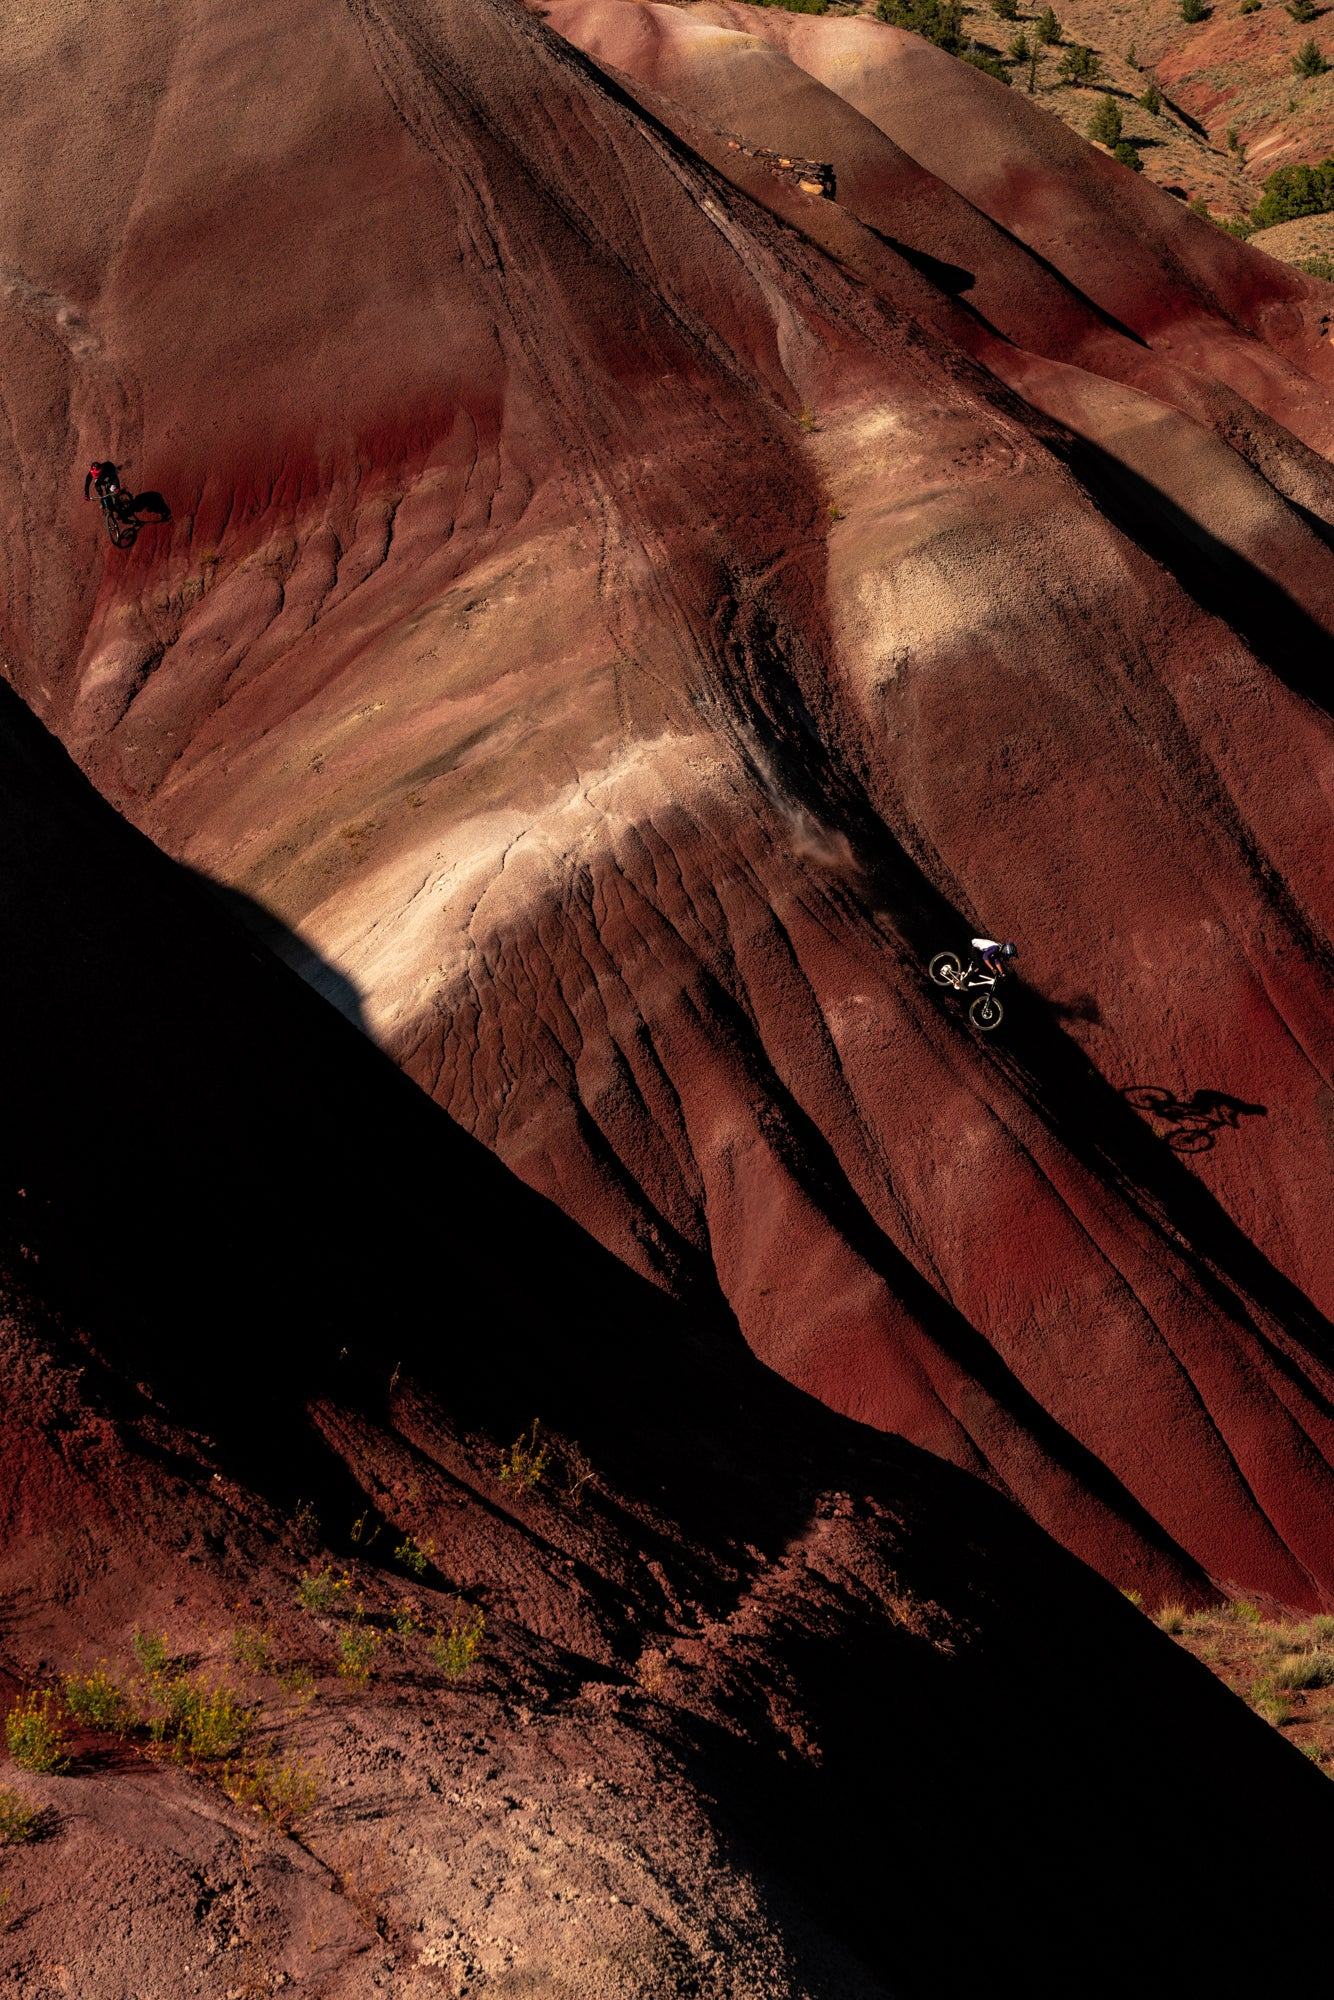 Mountain Biker Riding Down a Red Dirt Spine